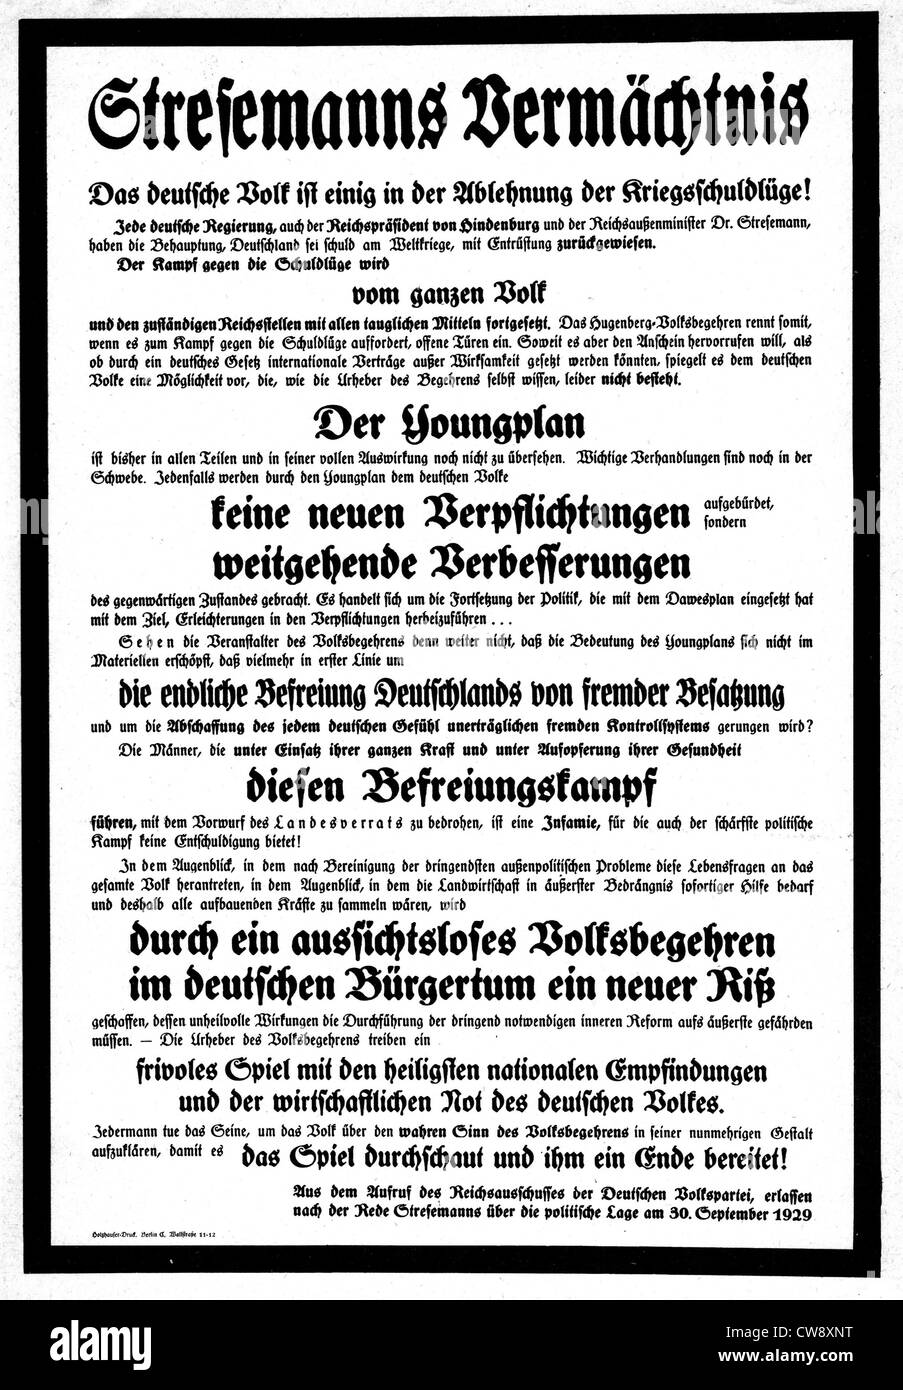 Poster published after the death of Stresemann - Stock Image